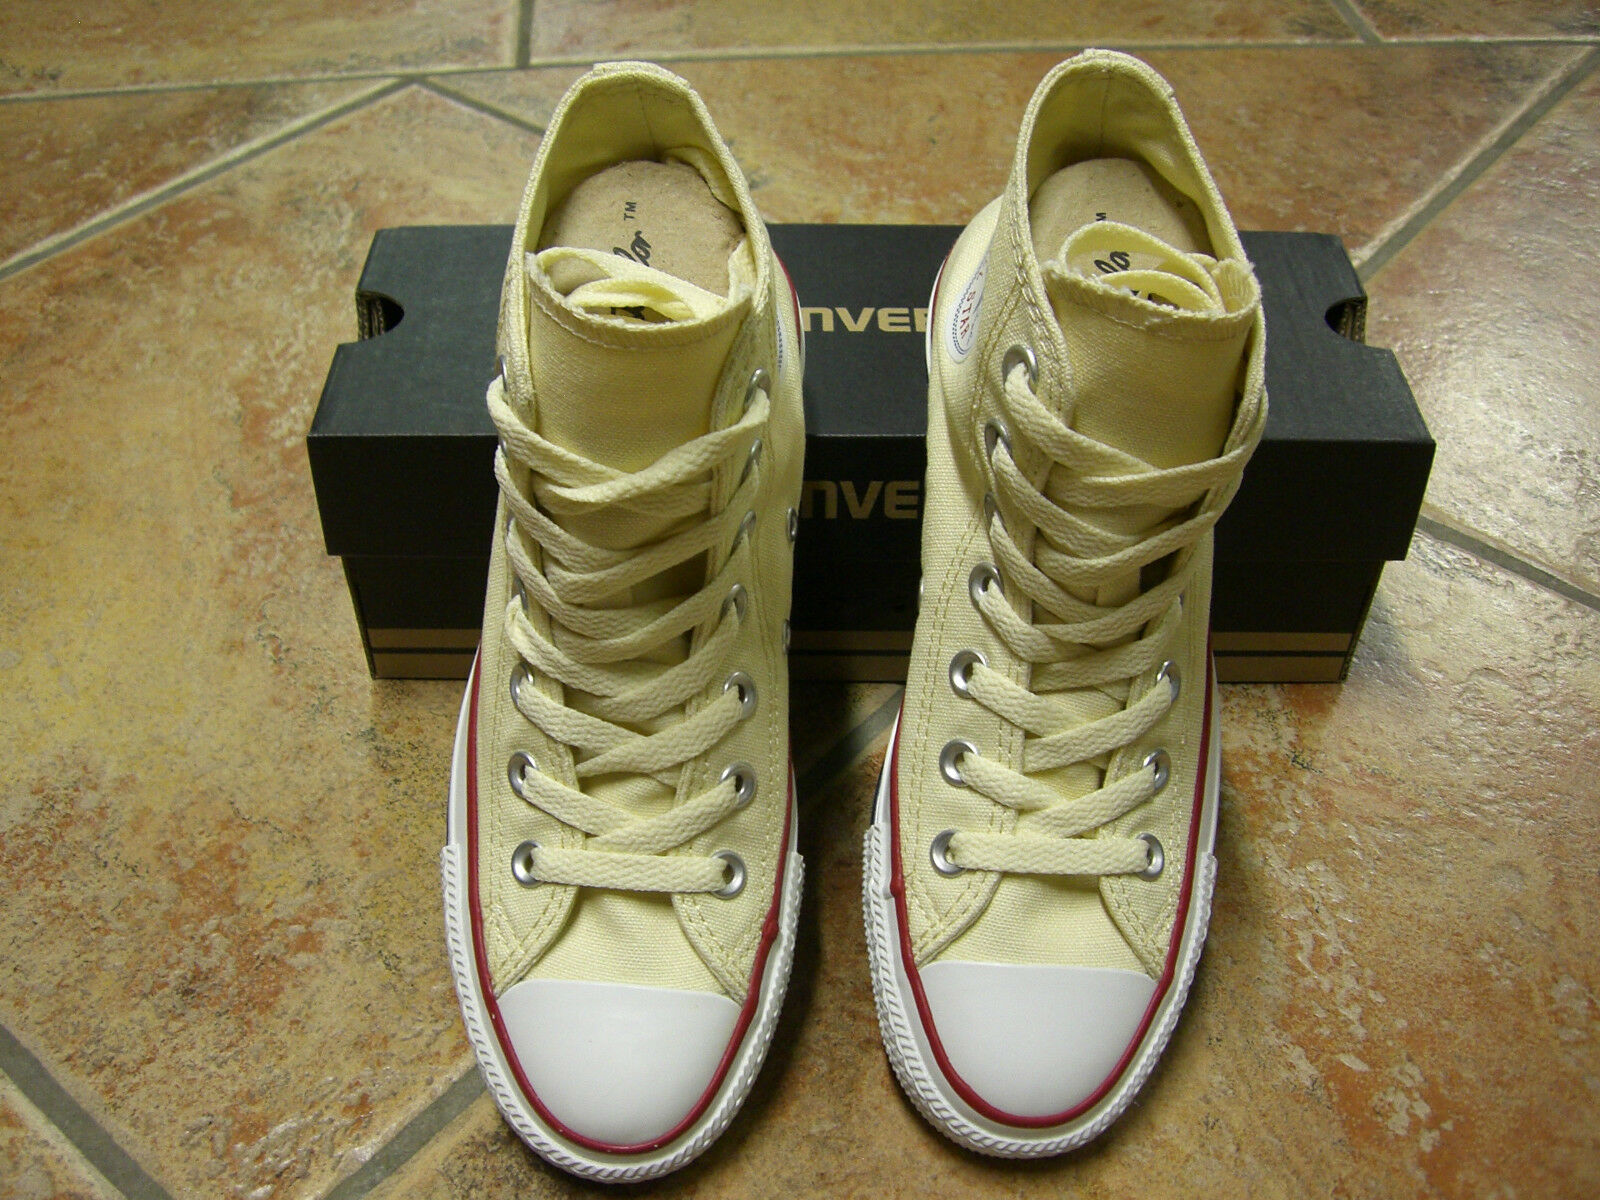 Converse Chucks Bll Star HI Gr.41 WHITE WEISS  M 9162 NEU TRENDY TOP